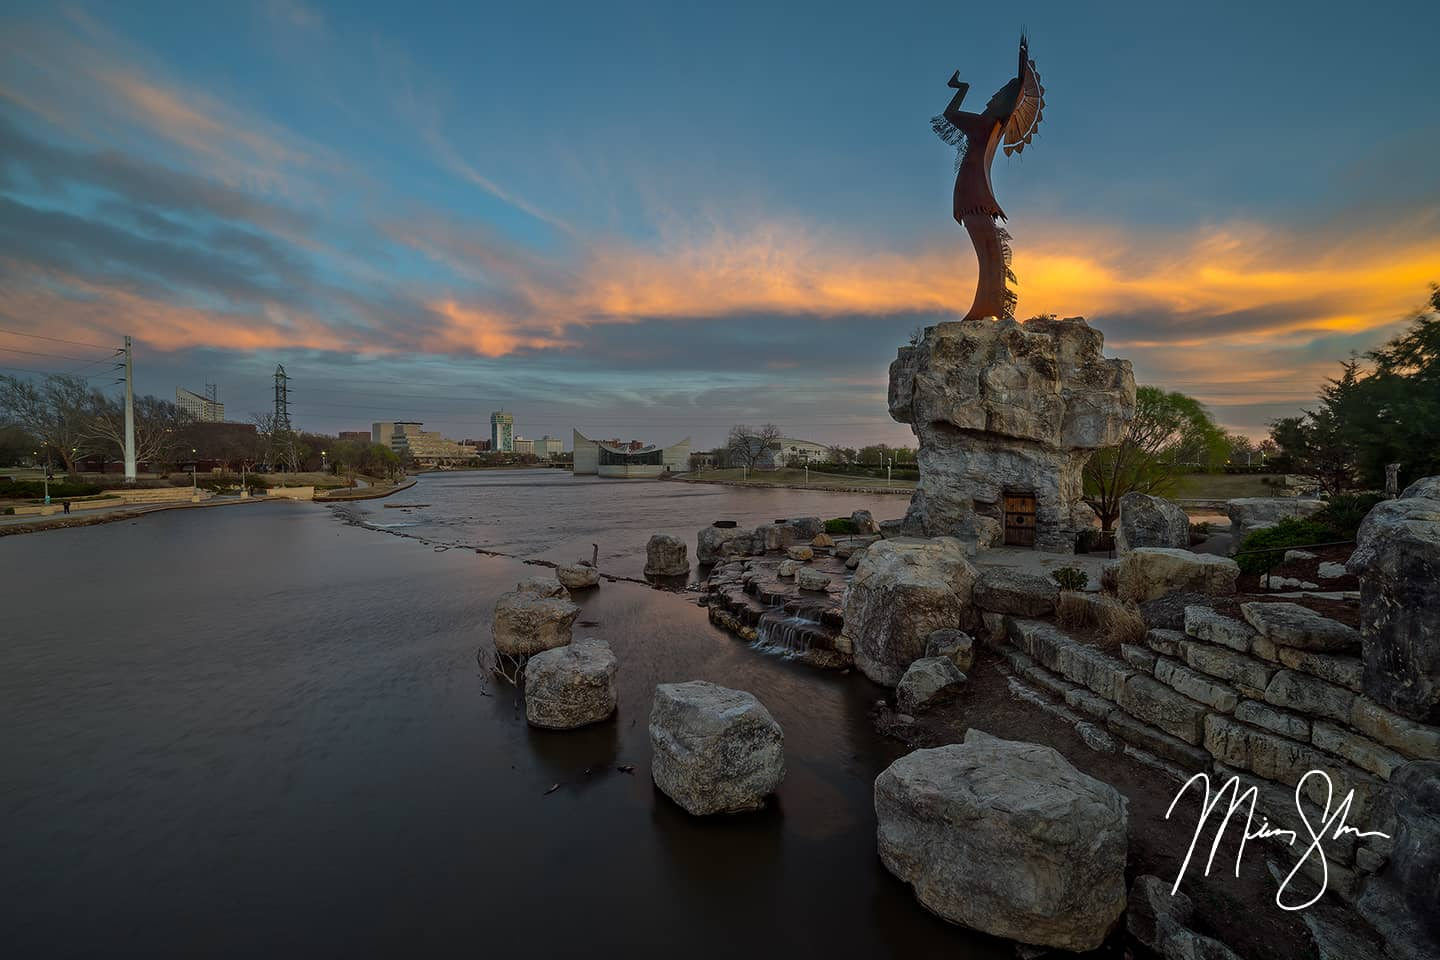 Open edition fine art print of Keeper of the Plains Spring Sunset from Mickey Shannon Photography. Location: Keeper of the Plains, Wichita, Kansas